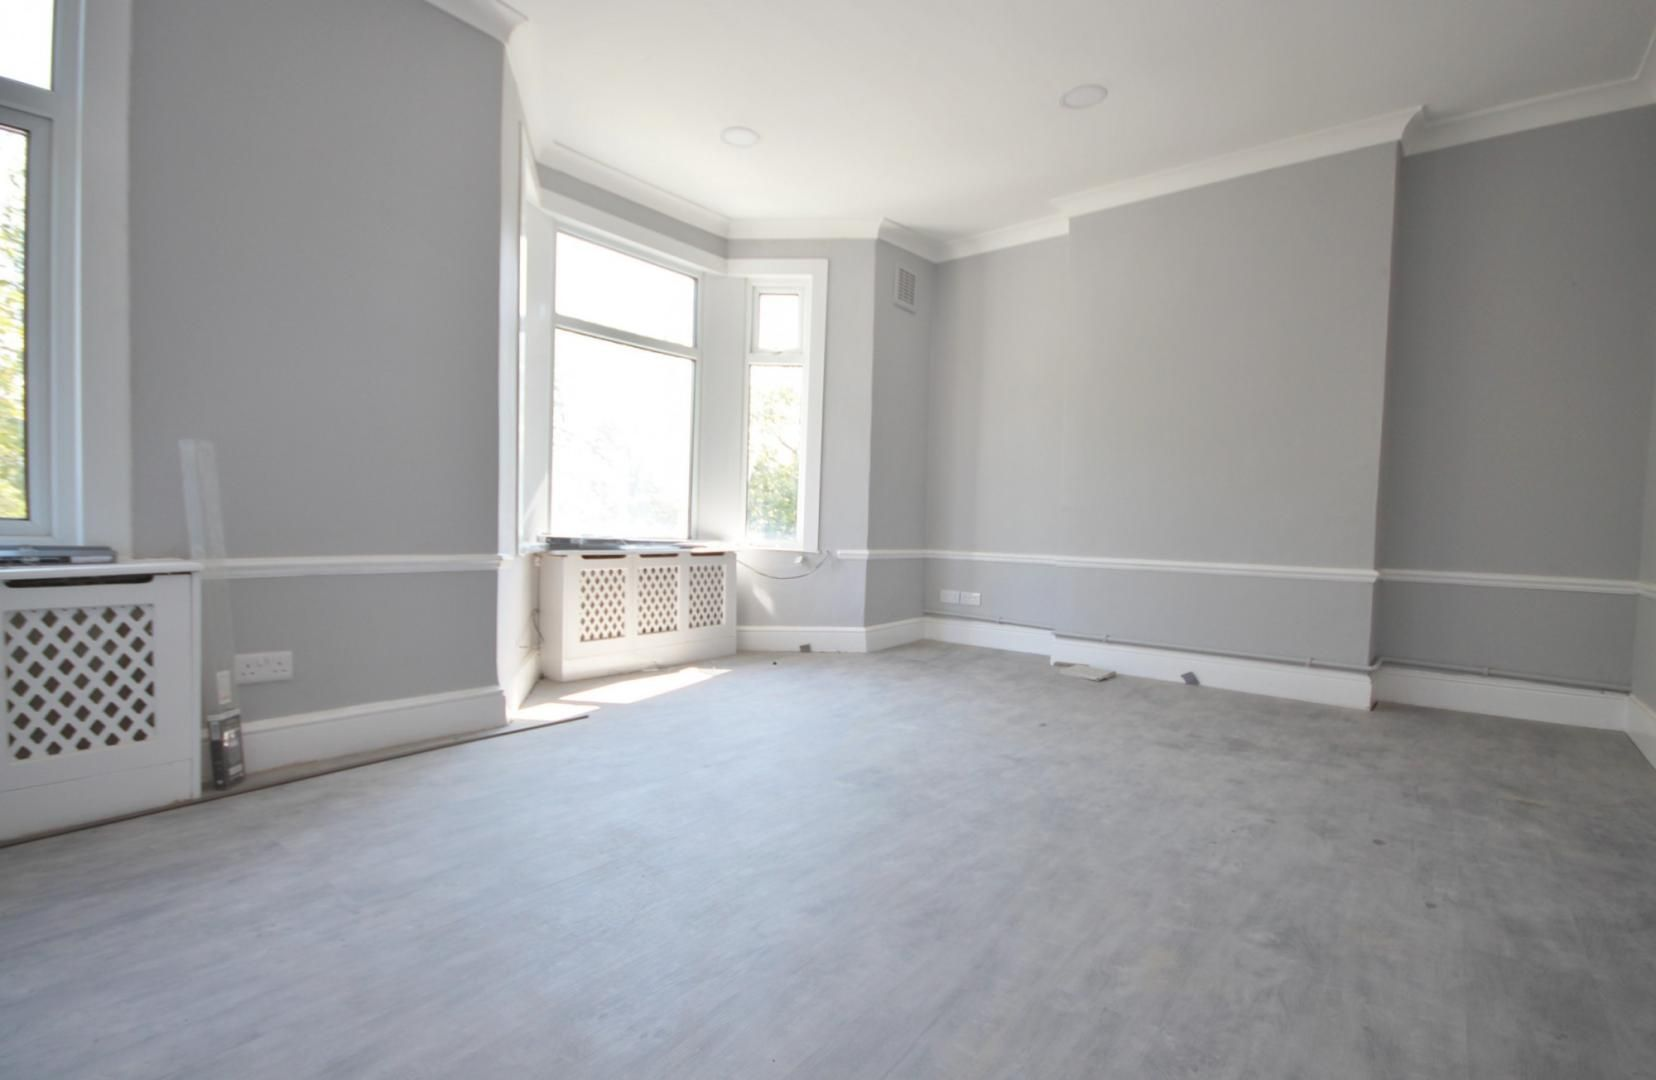 2 bed flat to rent in Forest Drive, E12